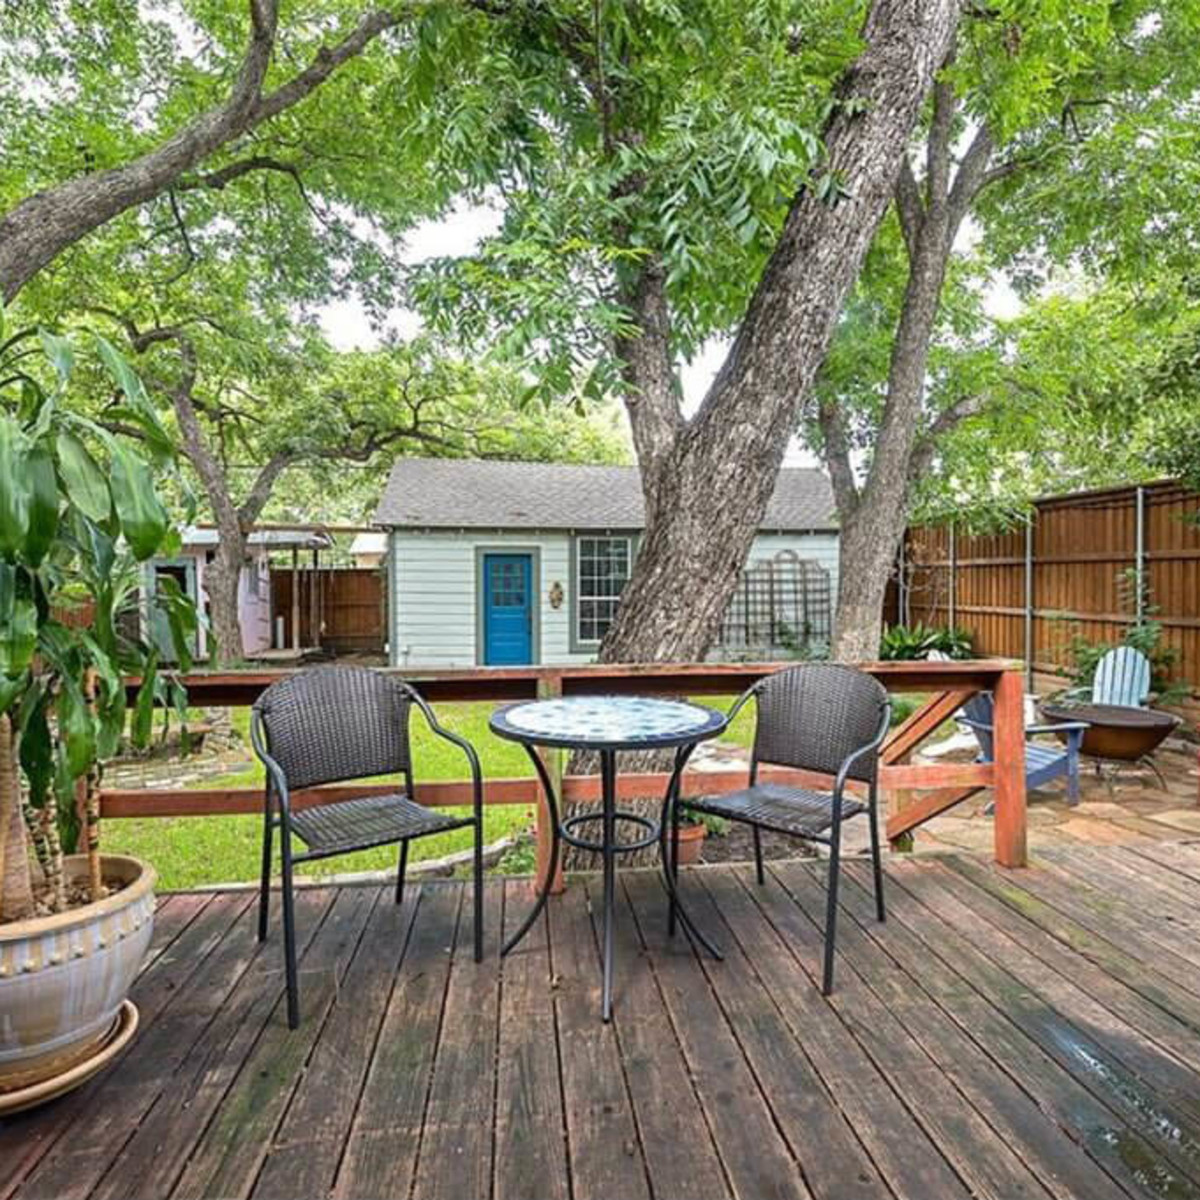 Backyard at 701 S. Clinton Ave. in Oak Cliff